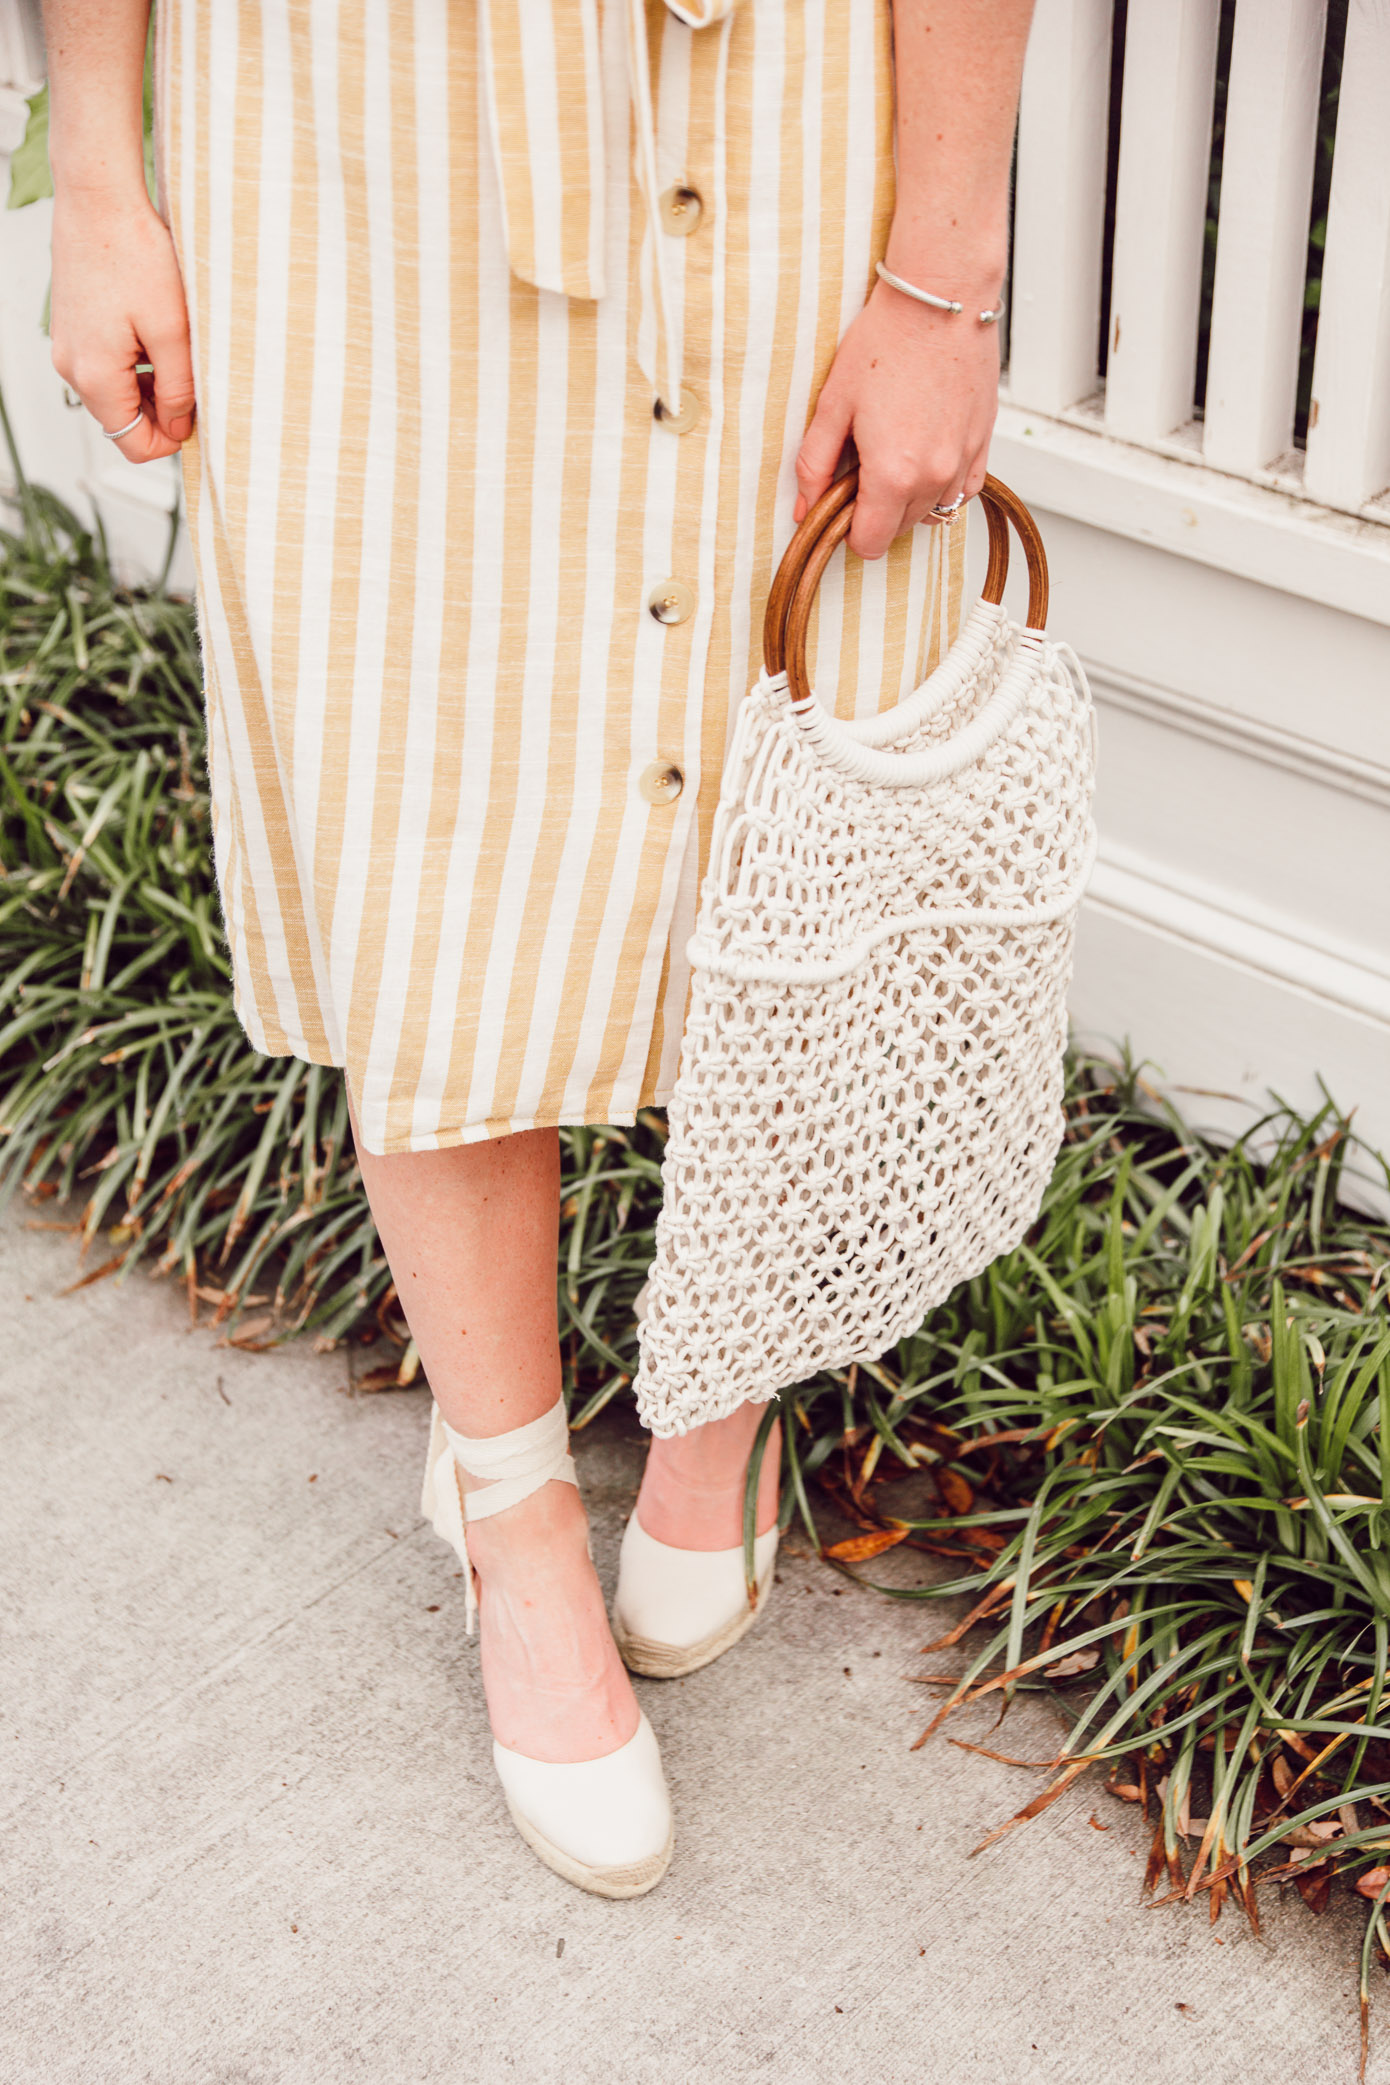 The best macrame bag to carry this spring | Louella Reese